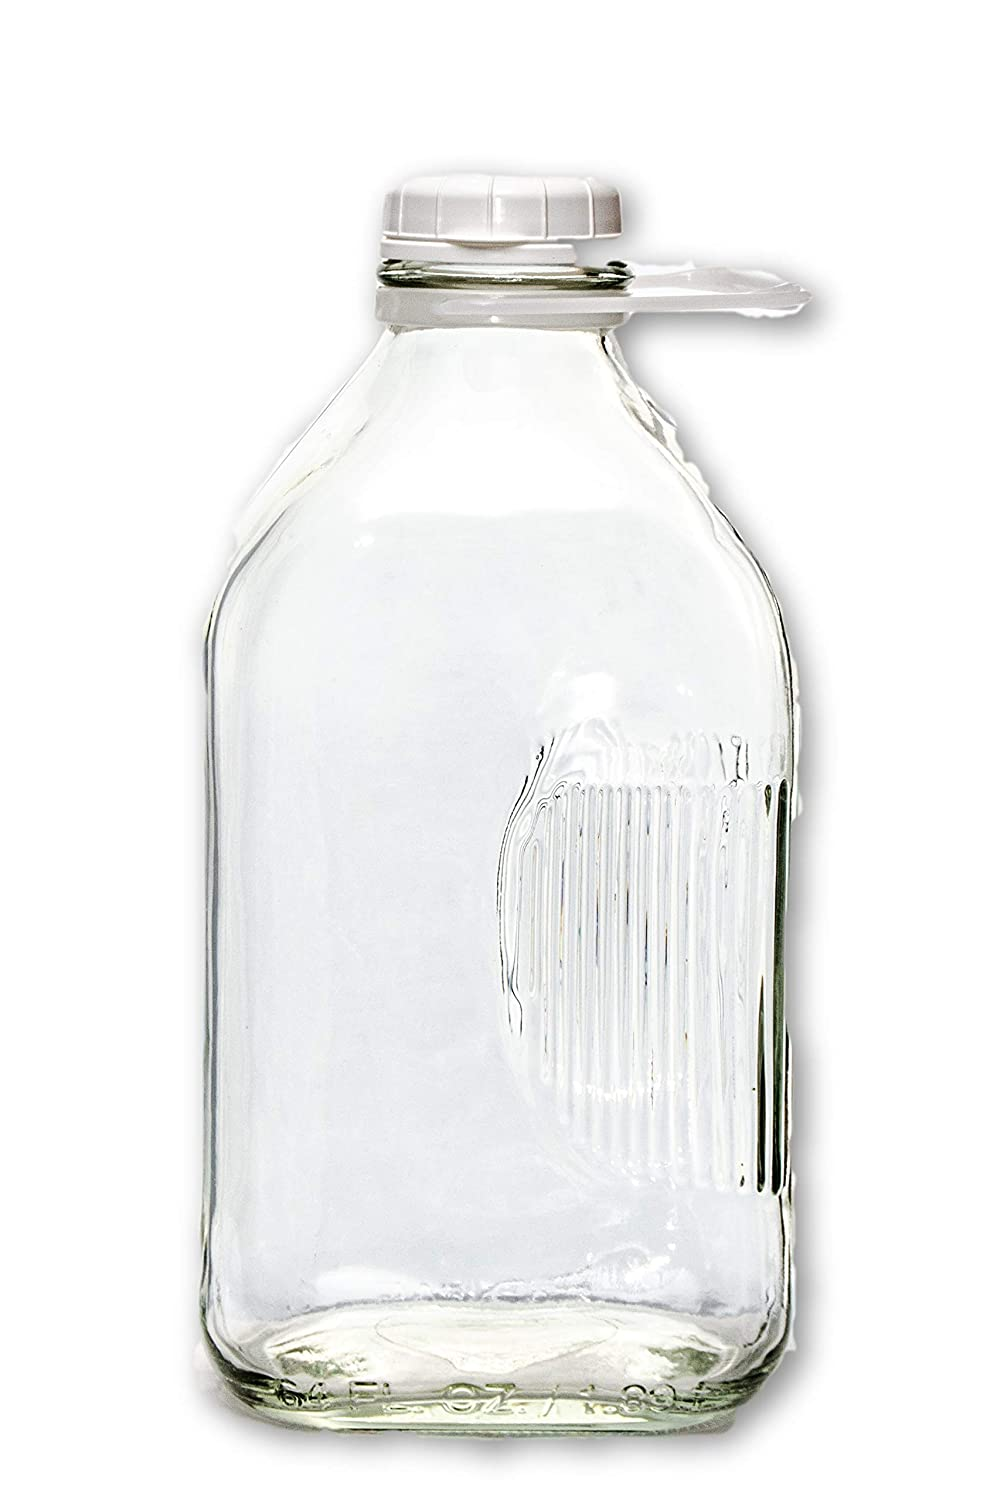 2 Qt Glass Milk Bottle, 64 oz, Heavy Glass with Lid, Creamery Style